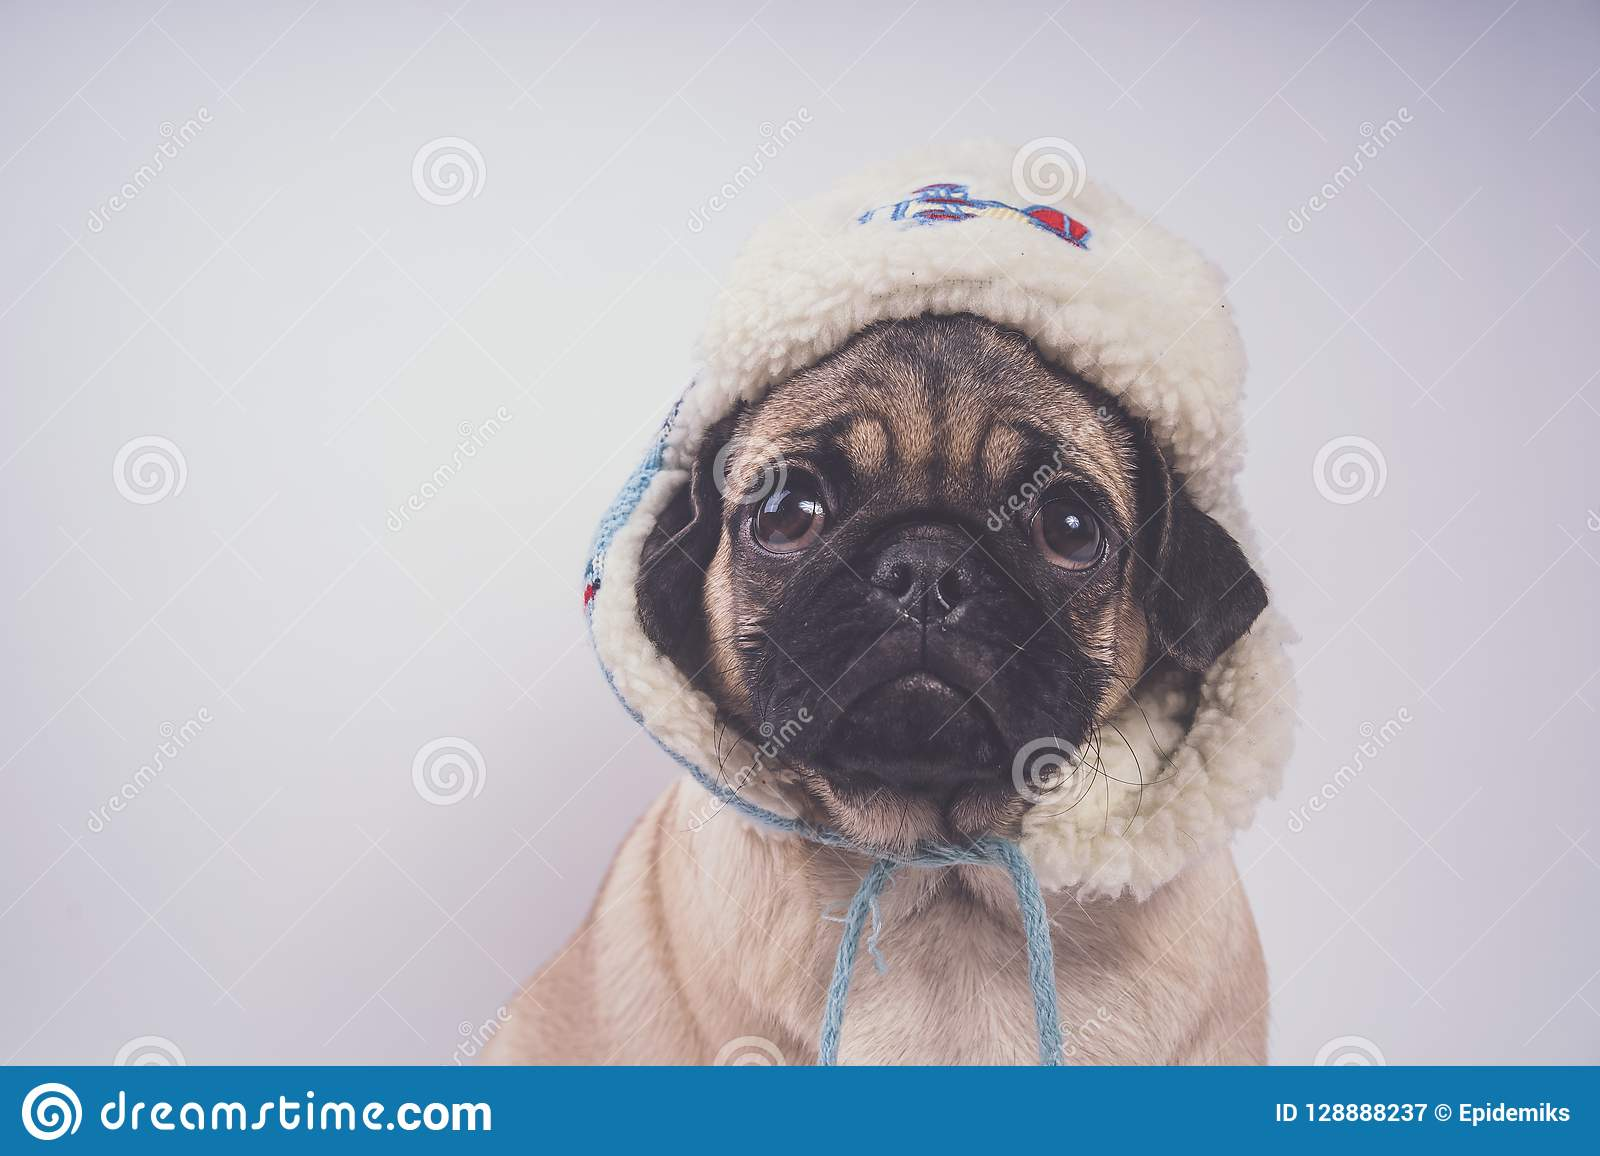 6d03a437 Pug, Dog On White Background. Cute Friendly Fat Chubby Pug Puppy ...